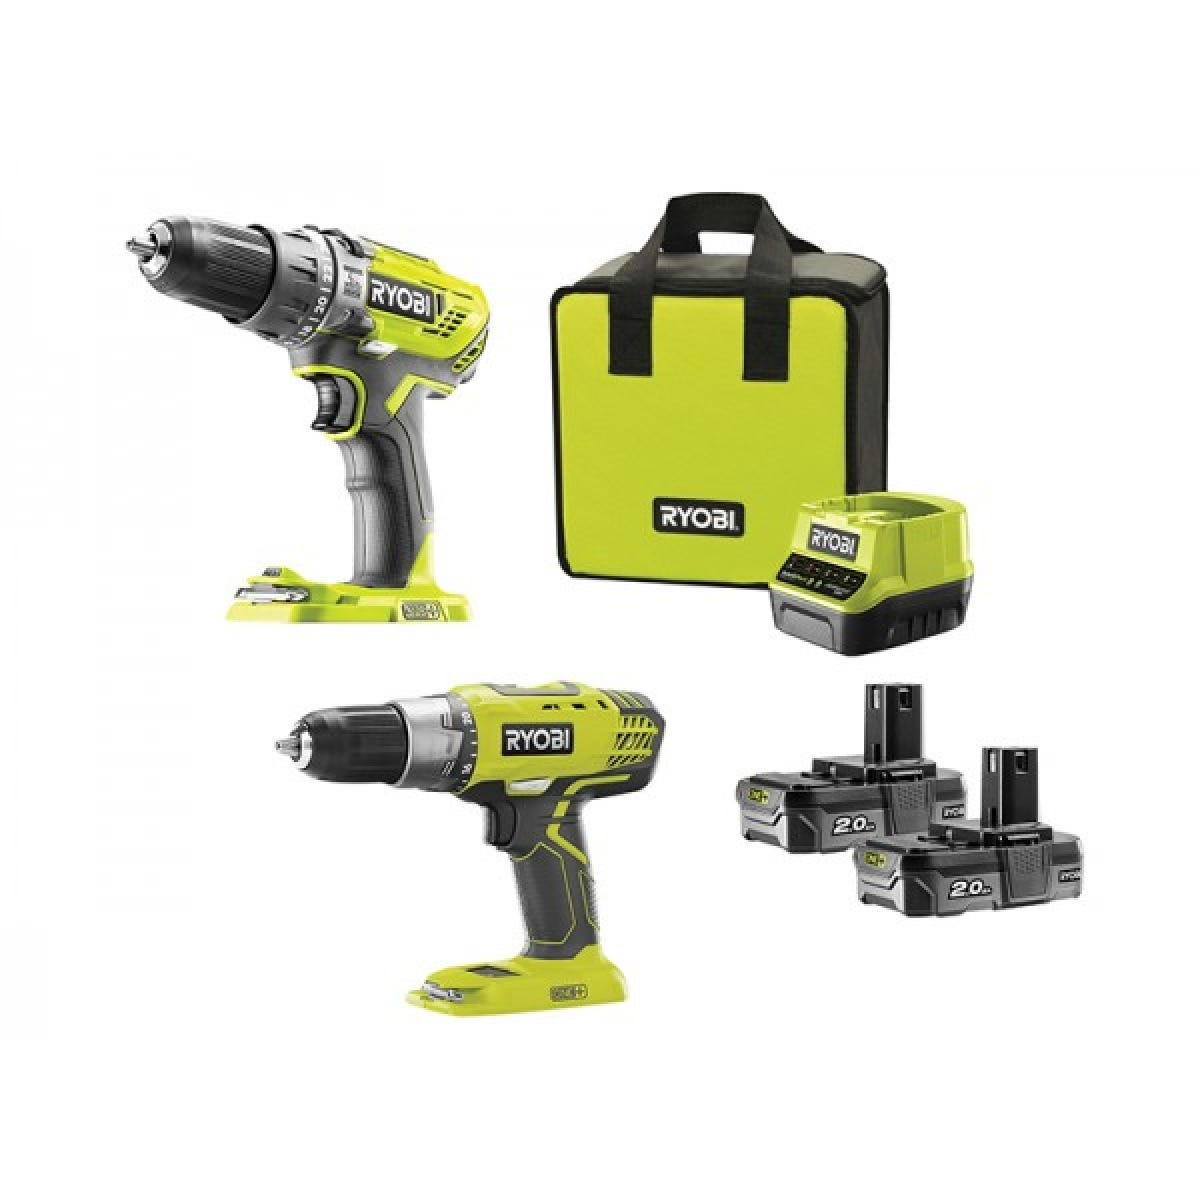 Ryobi ONE+ 18V Cordless Combi Drill and Drill Driver Twin Pack 2 x 2.0Ah Li-ion with Carry Case